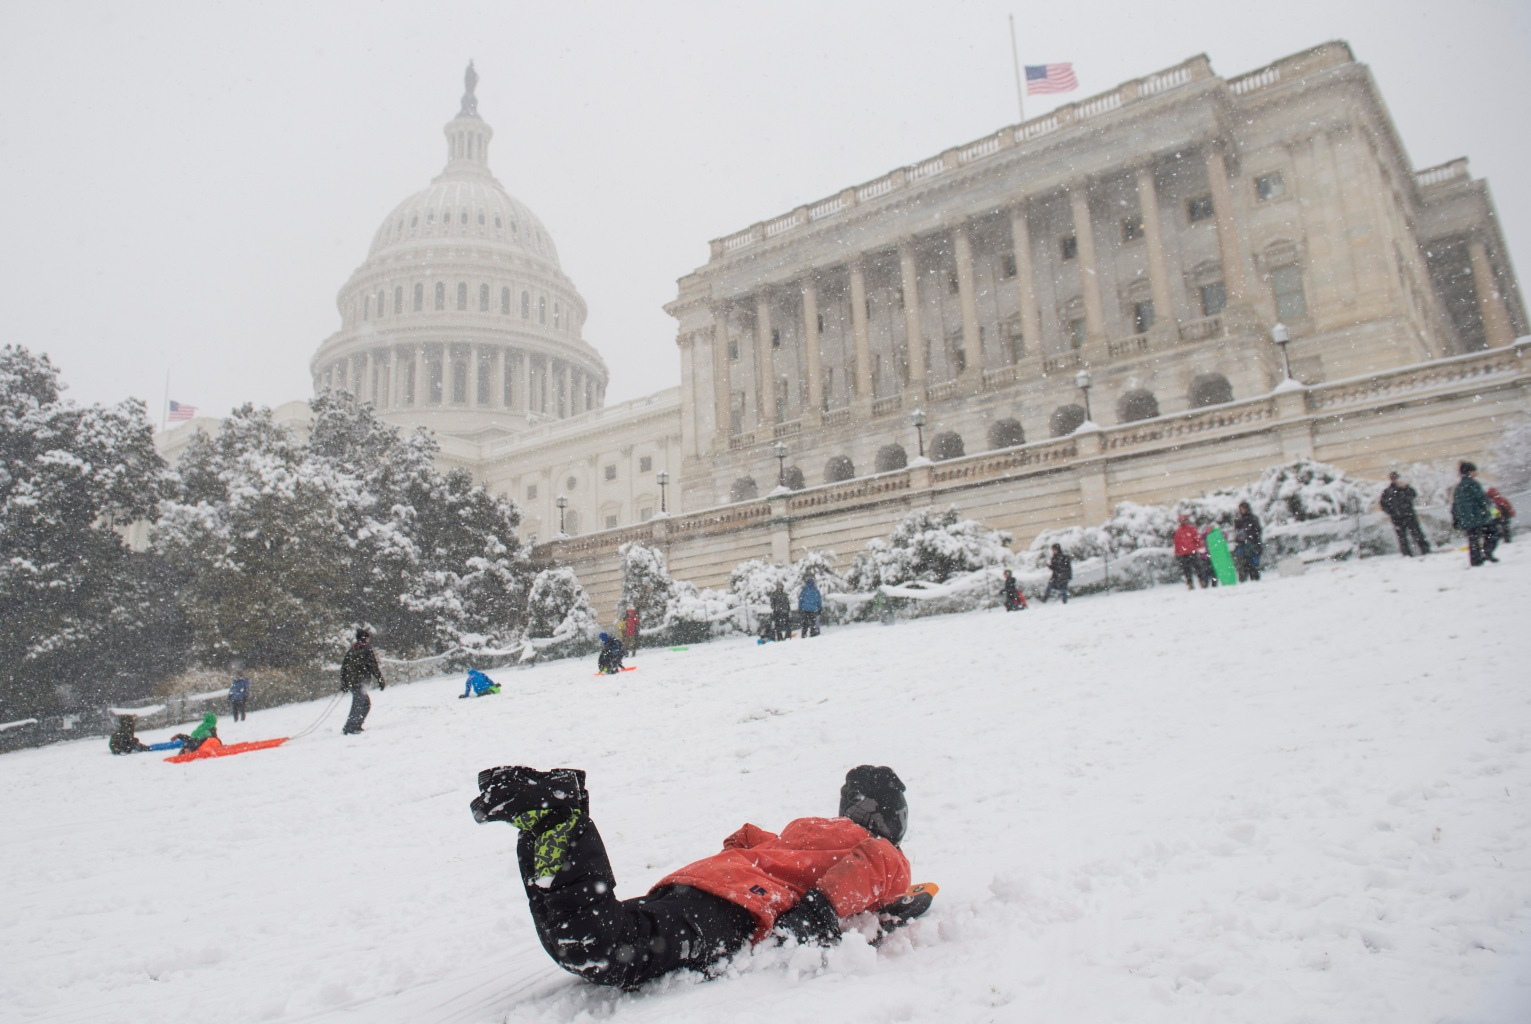 TOPSHOT - Children sled at the US Capitol during a snow storm in Washington, DC, March 21, 2018. The fourth Noreaster in less than three weeks, Winter Storm Toby, is throwing a fresh blanket of snow just as spring begins. The storm caused heavy damaged in the south with hail, high winds and tornadoes. / AFP PHOTO / SAUL LOEB        (Photo credit should read SAUL LOEB/AFP/Getty Images)